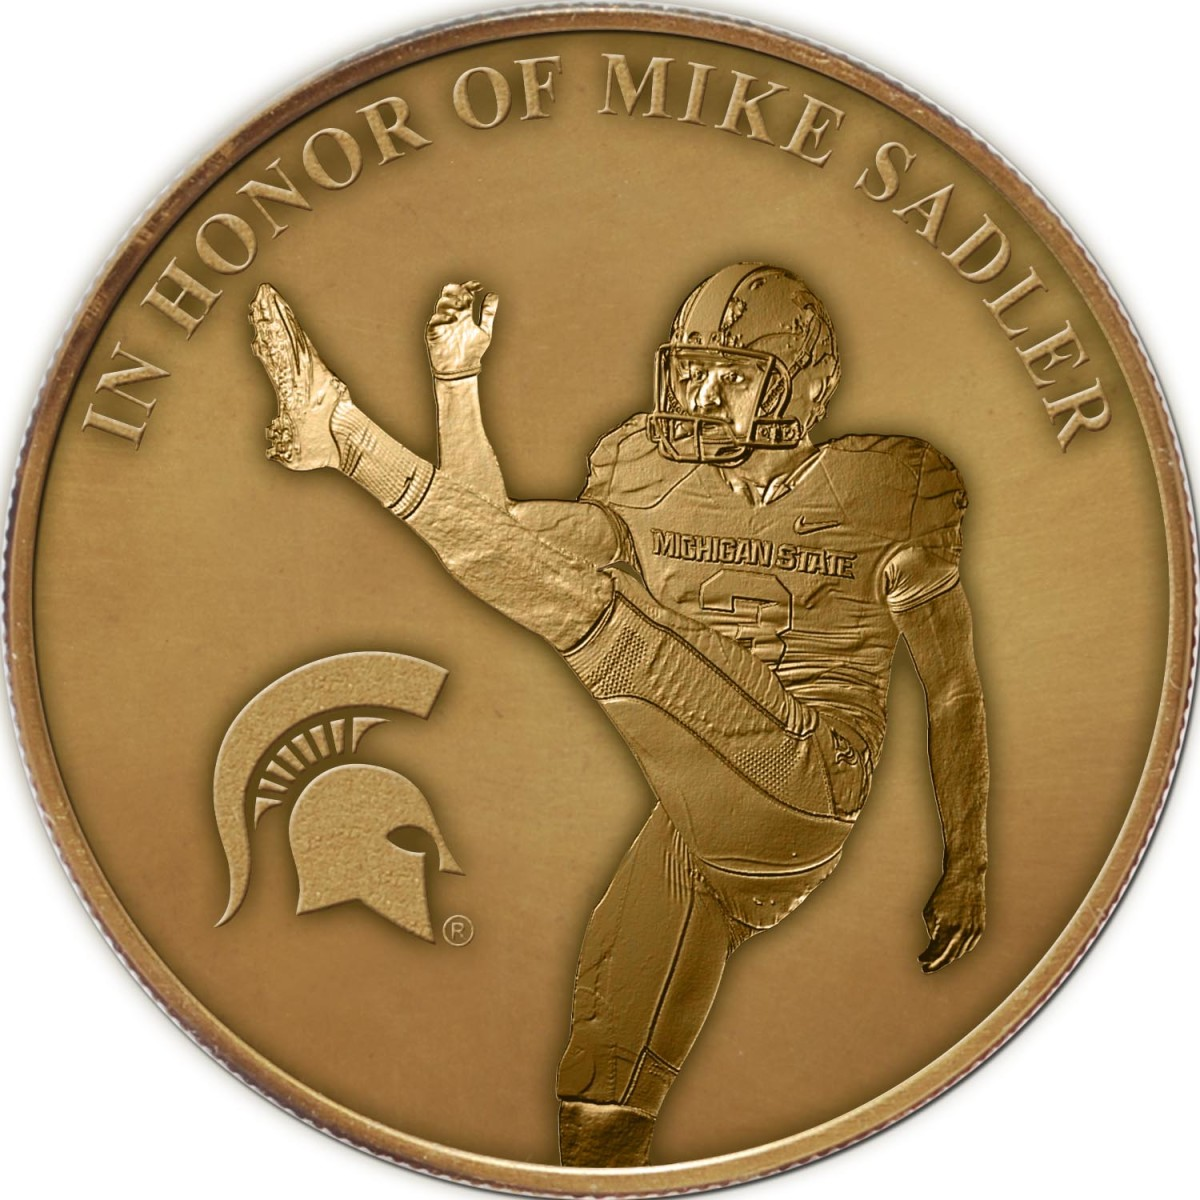 Mike Sadler B1G coin photo courtesy of the Big Ten Conference.